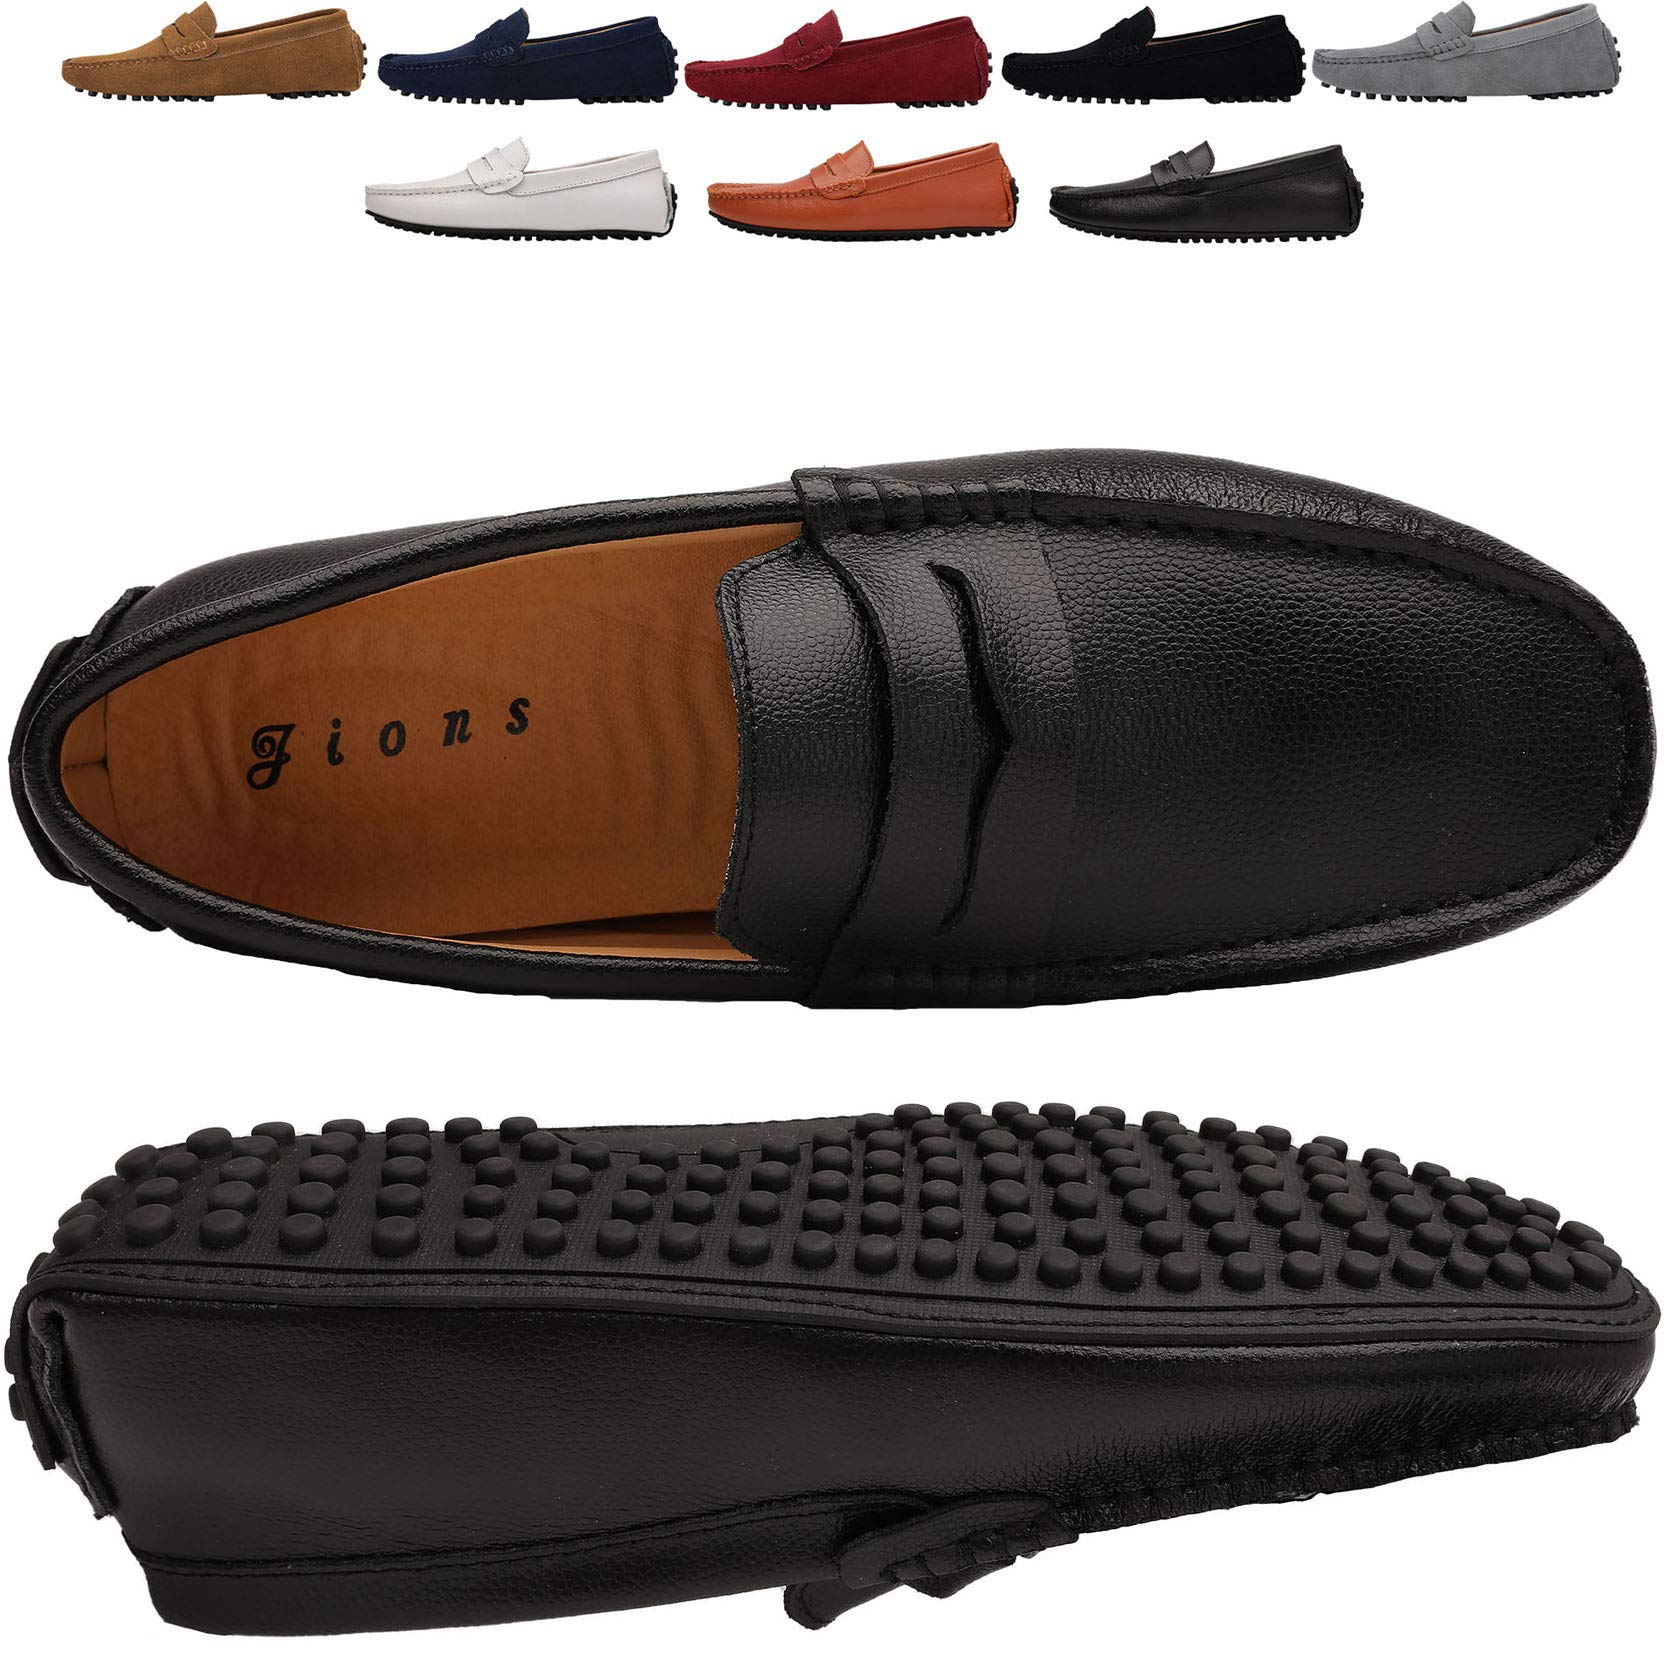 JIONS Mens Driving Penny Loafers Leather Driver Moccasins Slip On Flats Casual Dress Shoes E- Black 40/7.5 M US